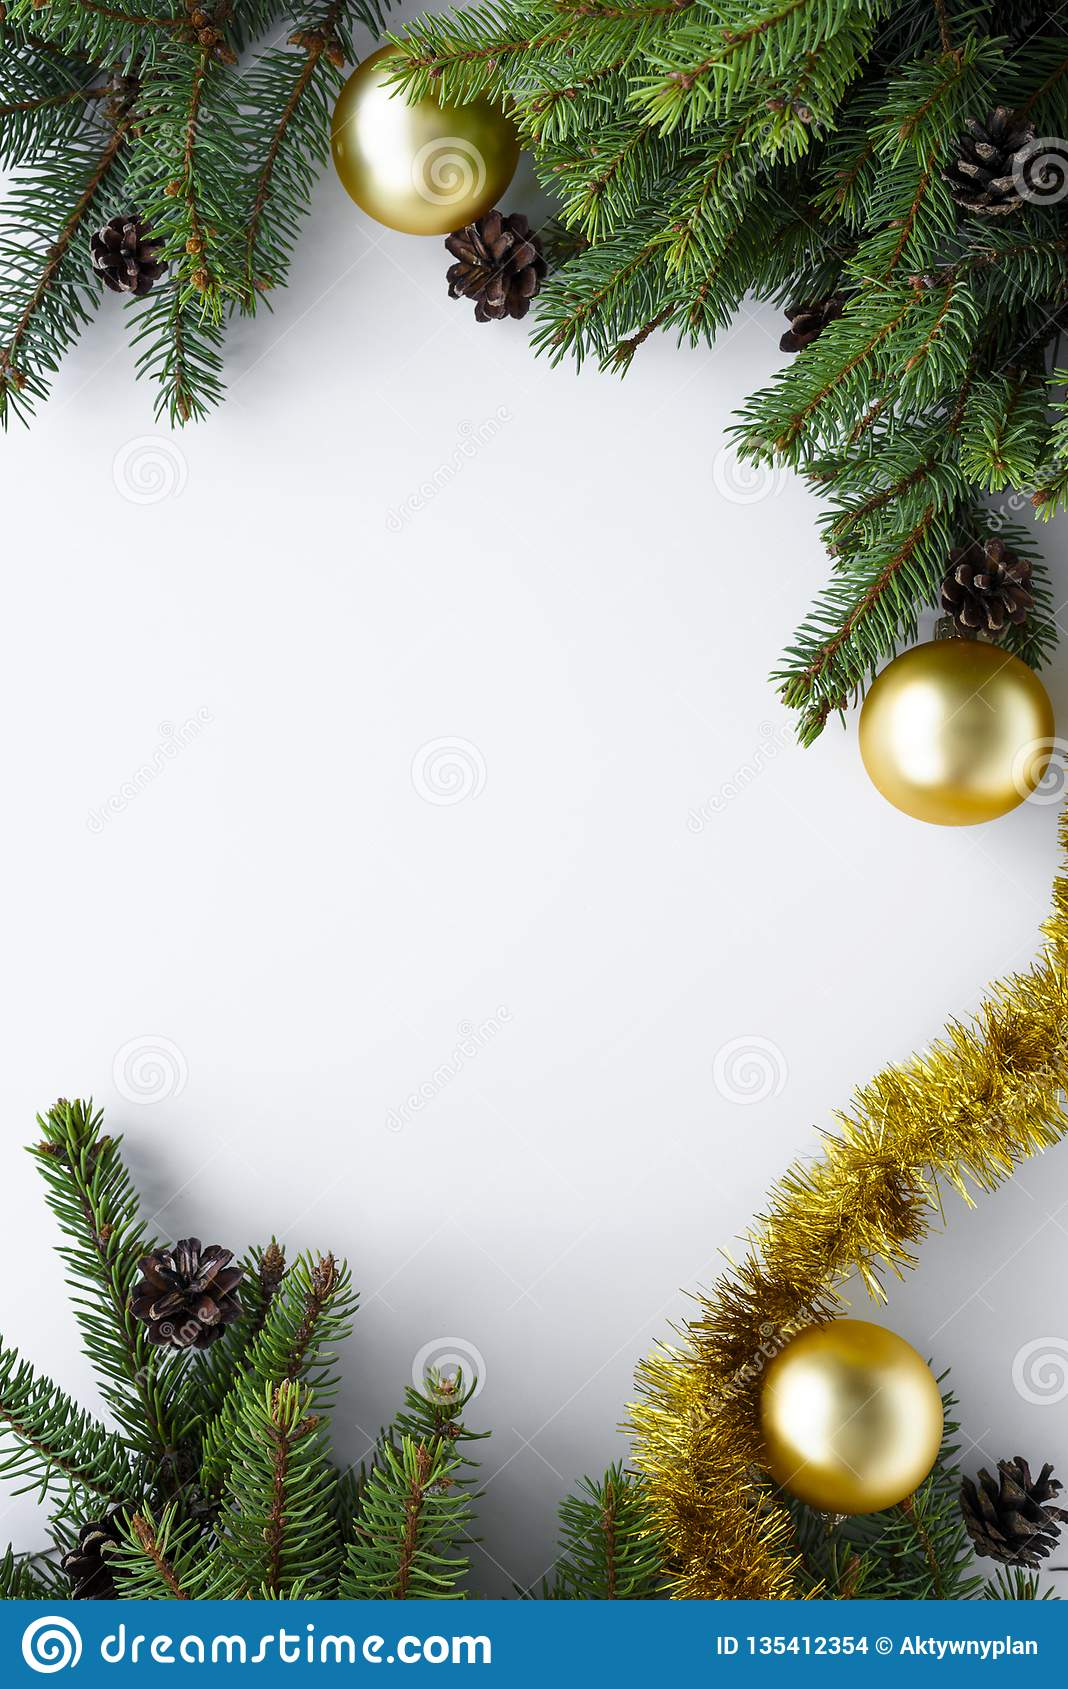 View from above on white table with christmas decoration in a vertical frame with copy space. Spruce branches and ornaments like